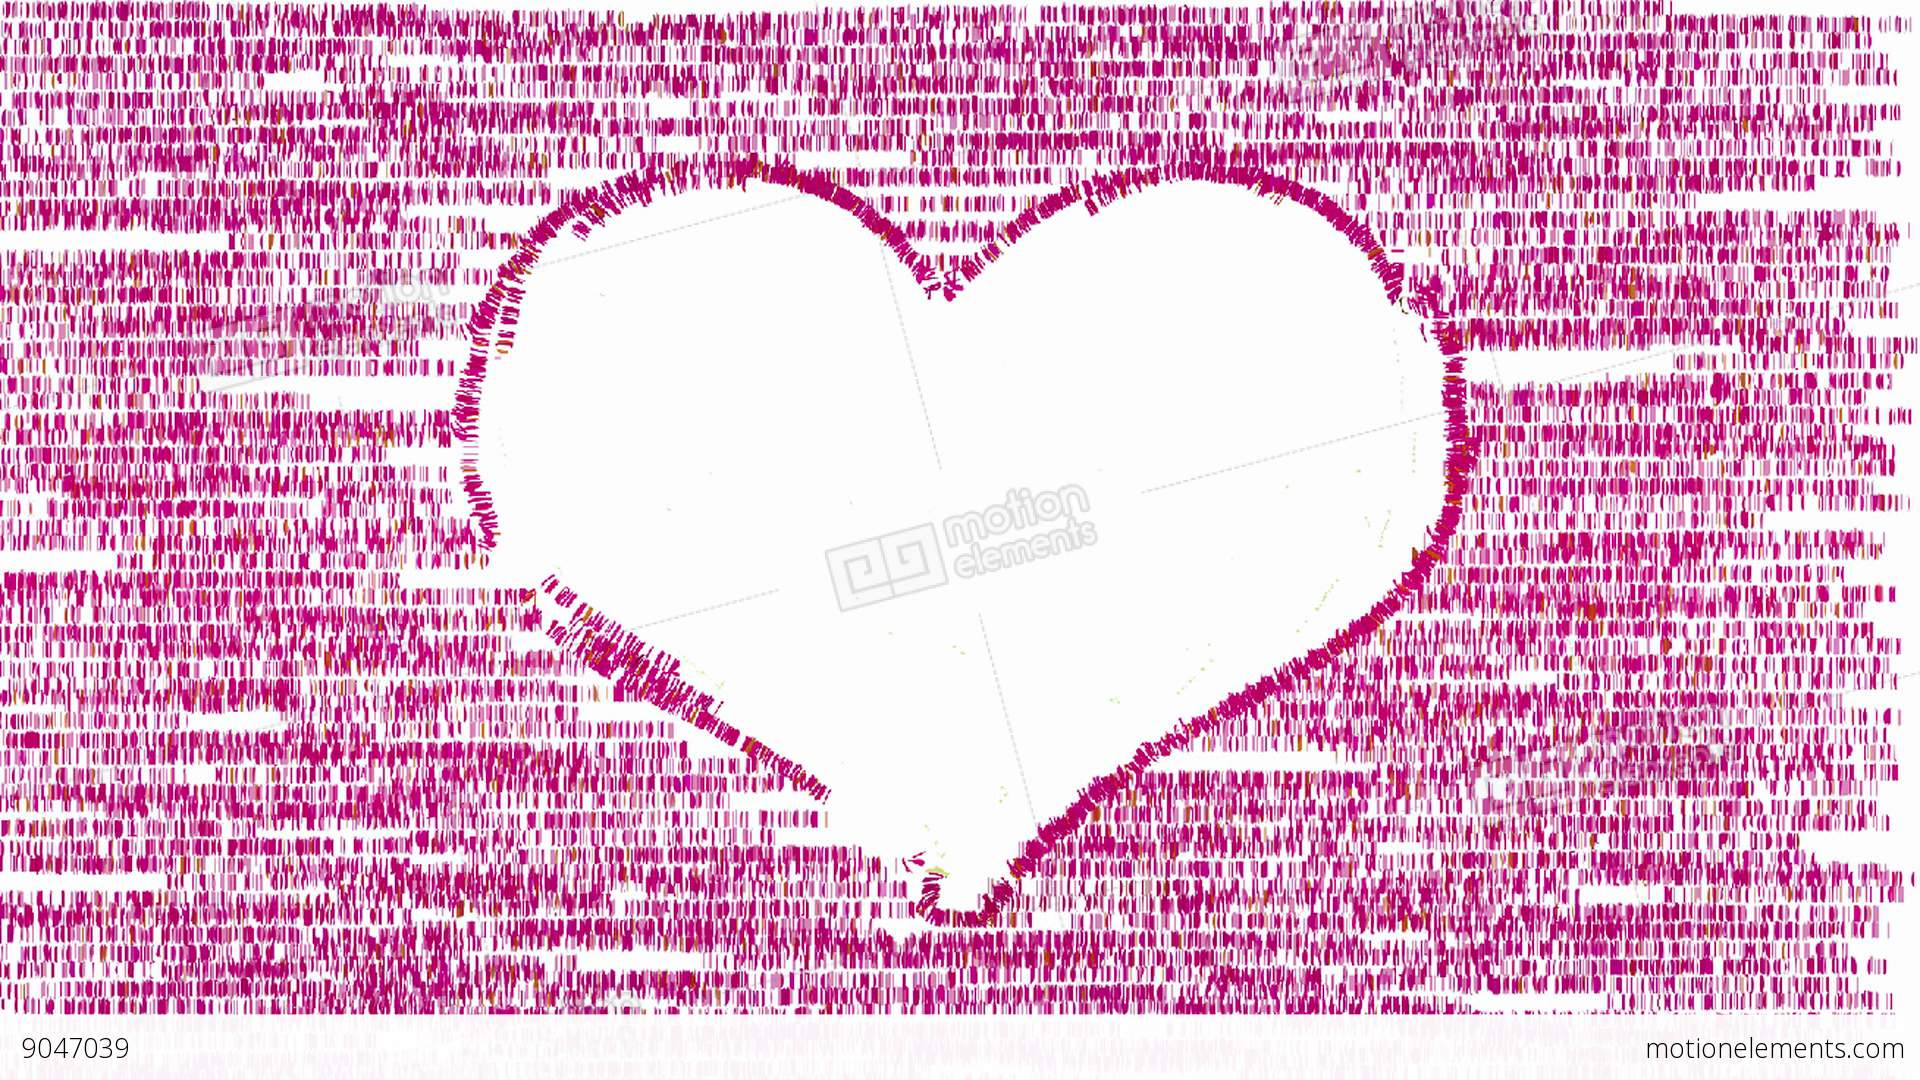 White Heart On Pink Animated Artistic Background Stock Animation